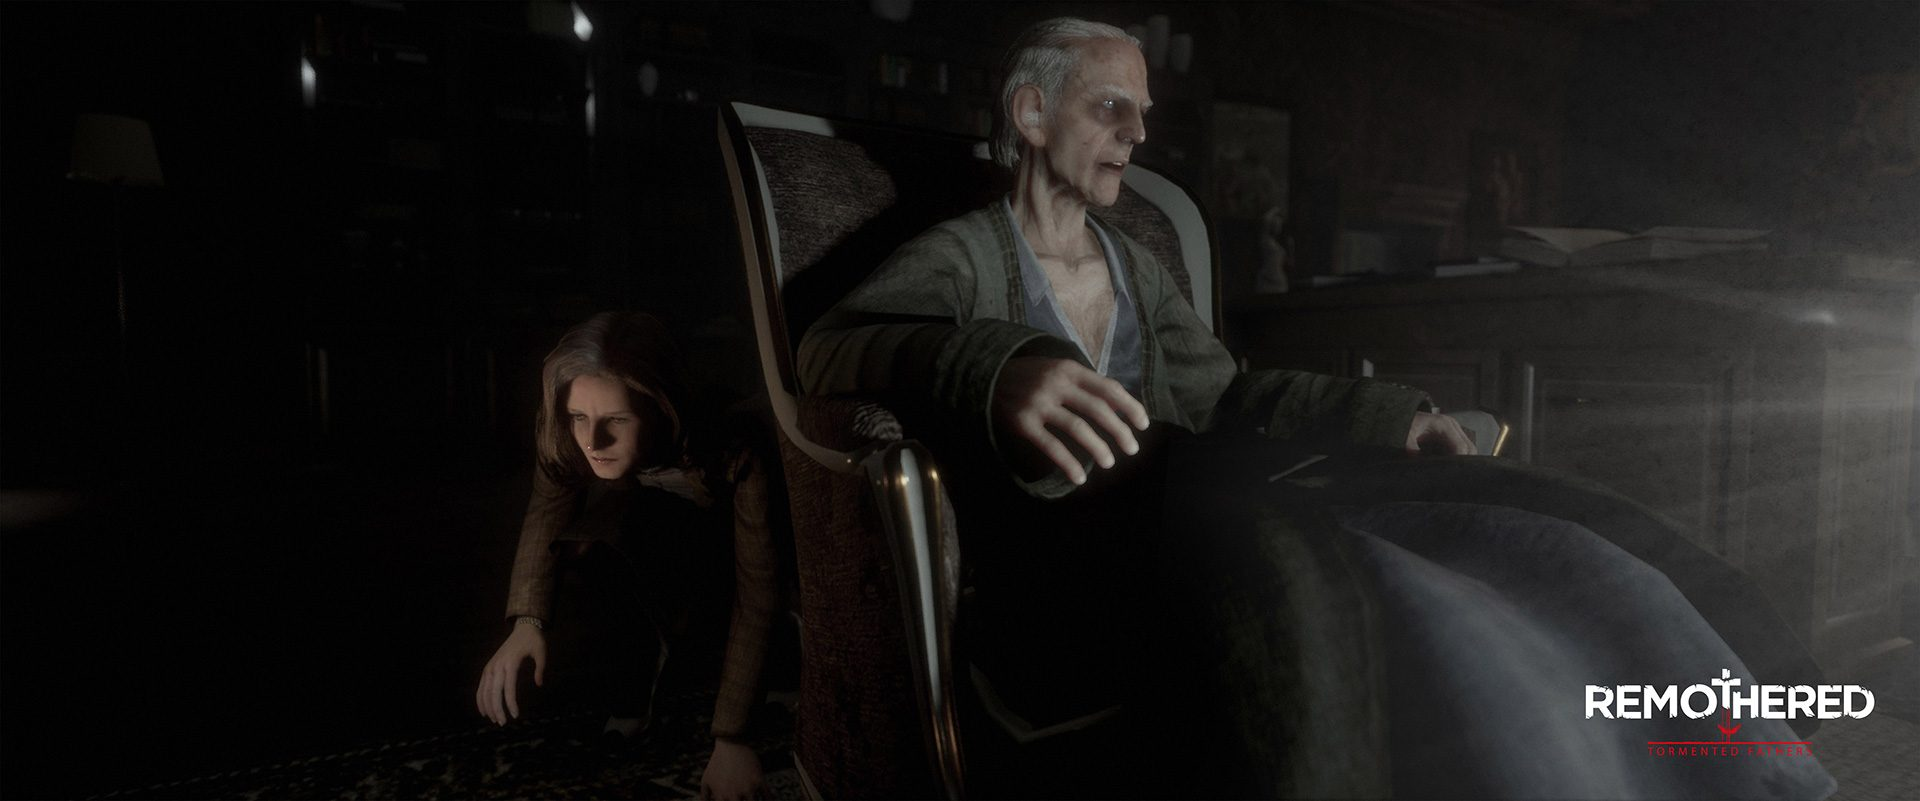 Remothered-Tormented-Fathers-12.jpg